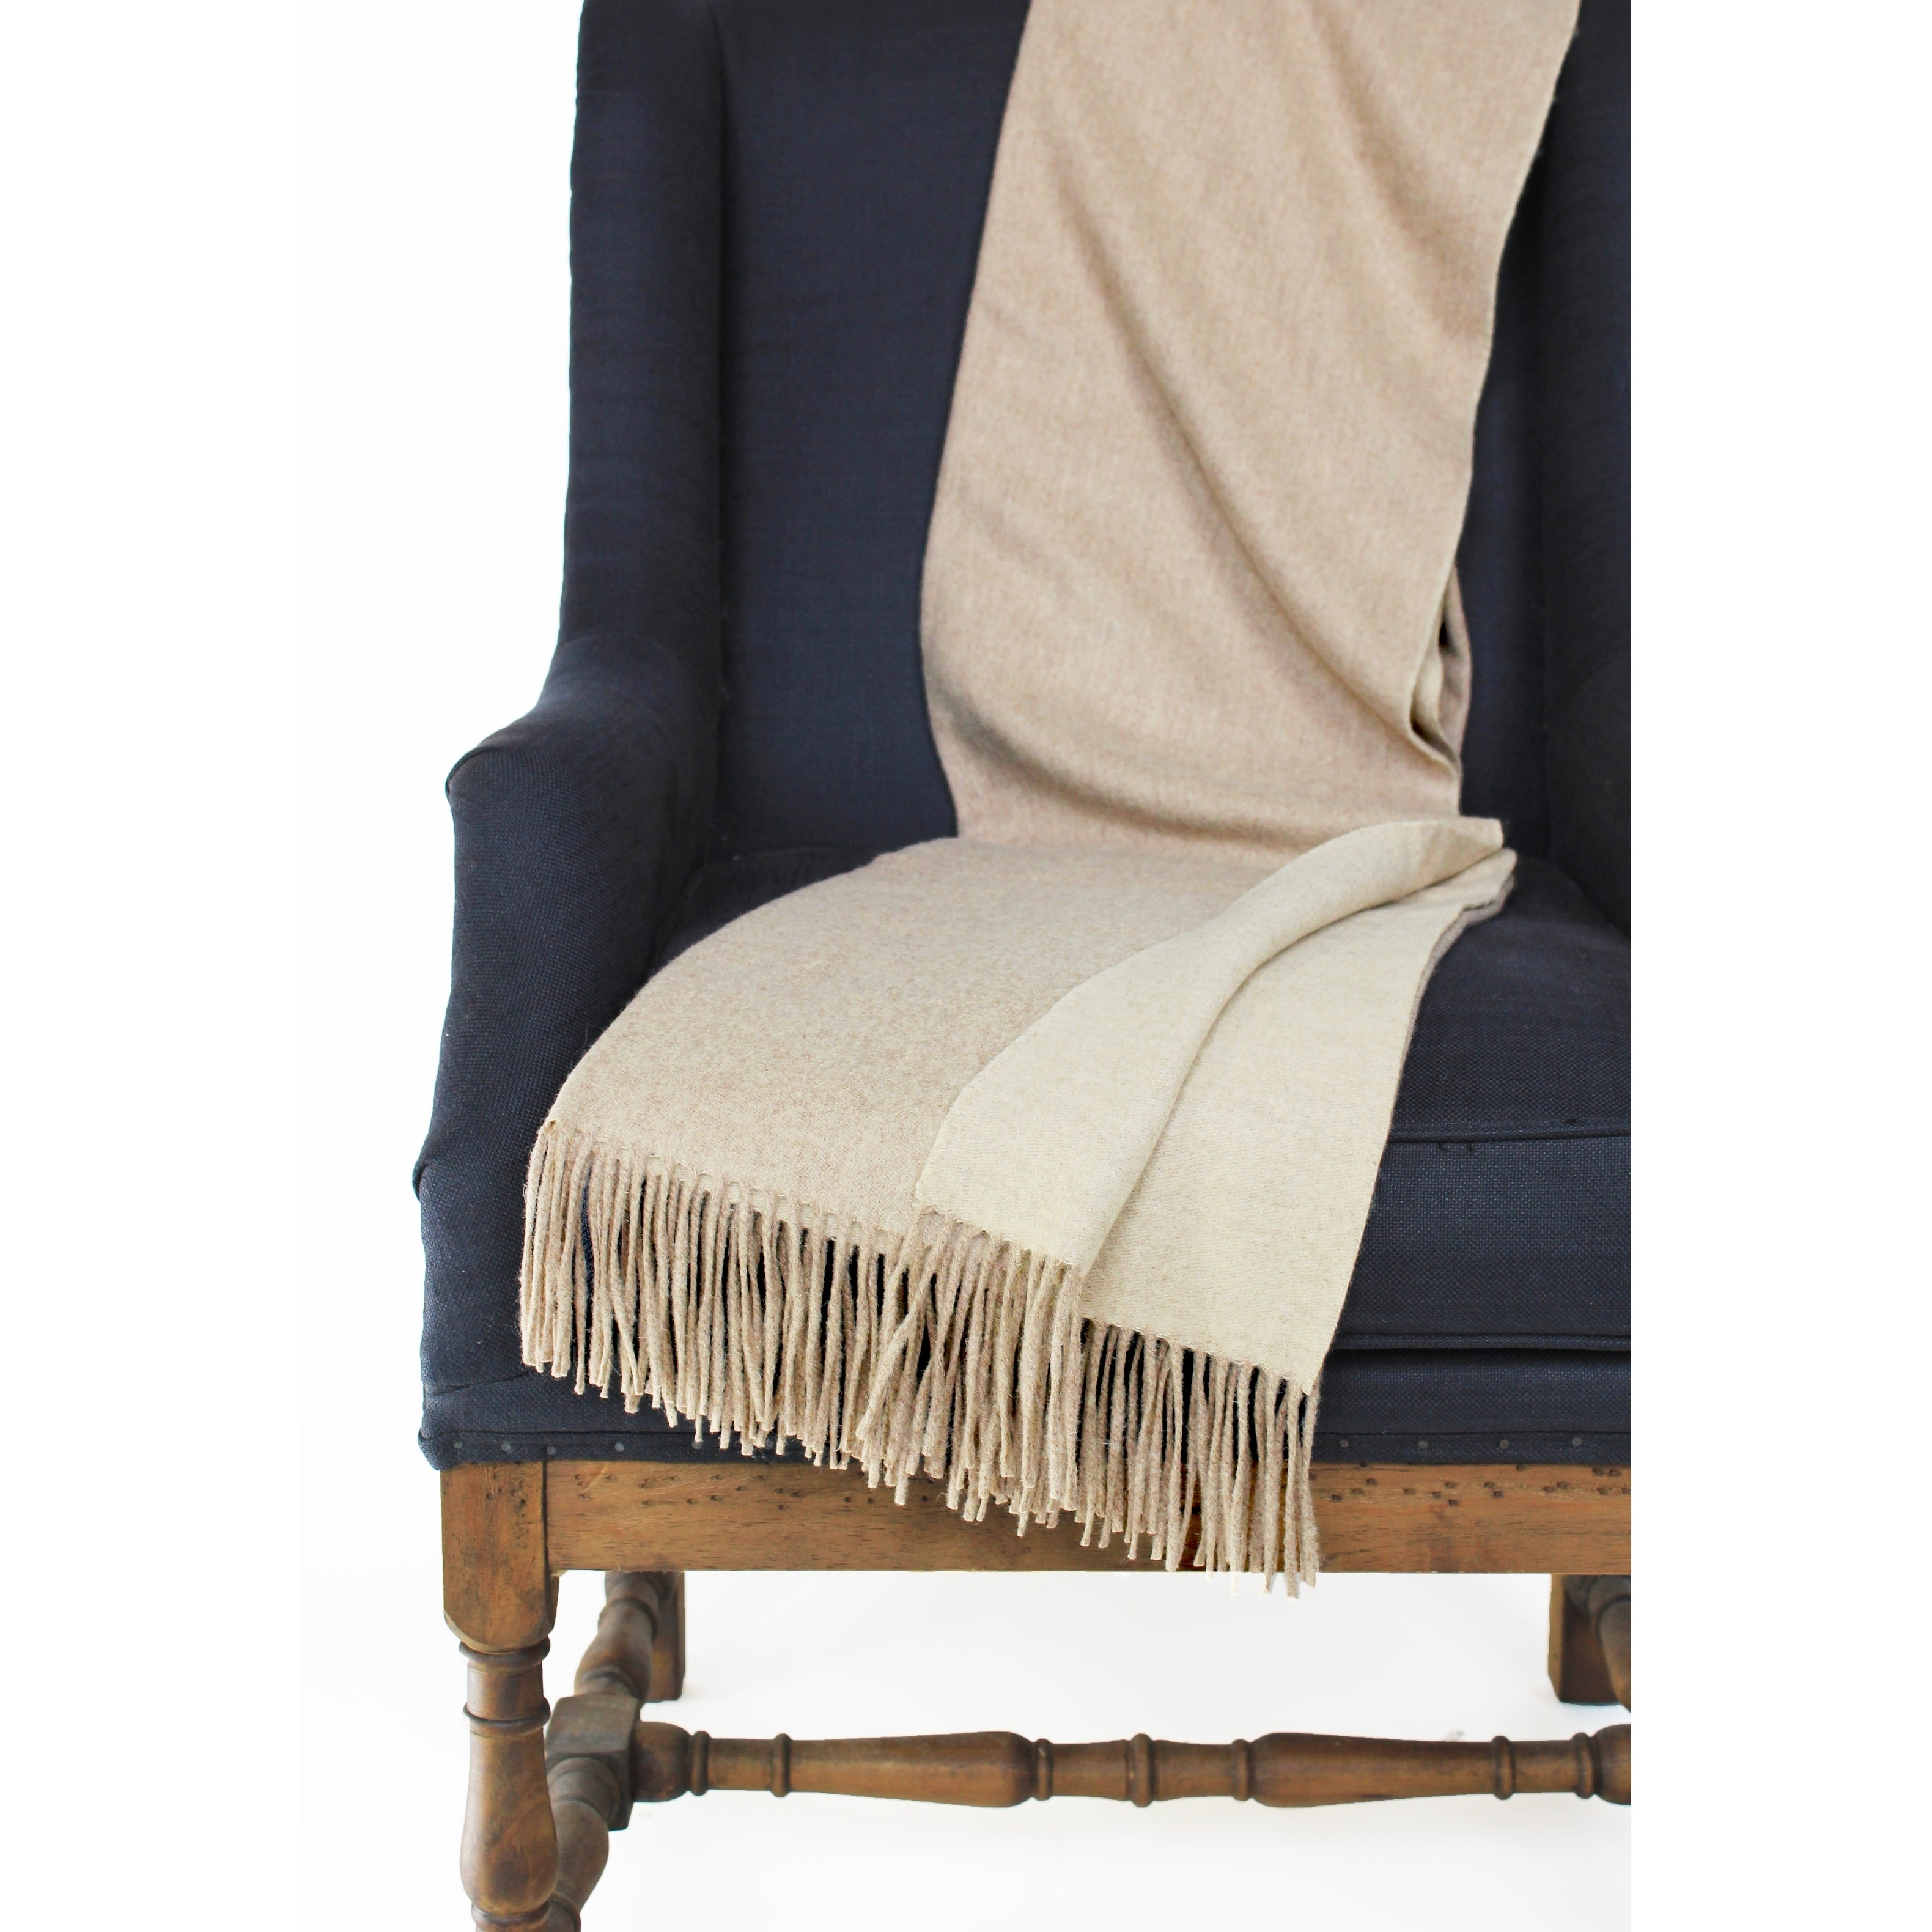 Smart Home Waffle Weave Blanket Fringed Sofa Bed Cover Cotton Rug Slipcover High Quality To Make One Feel At Ease And Energetic